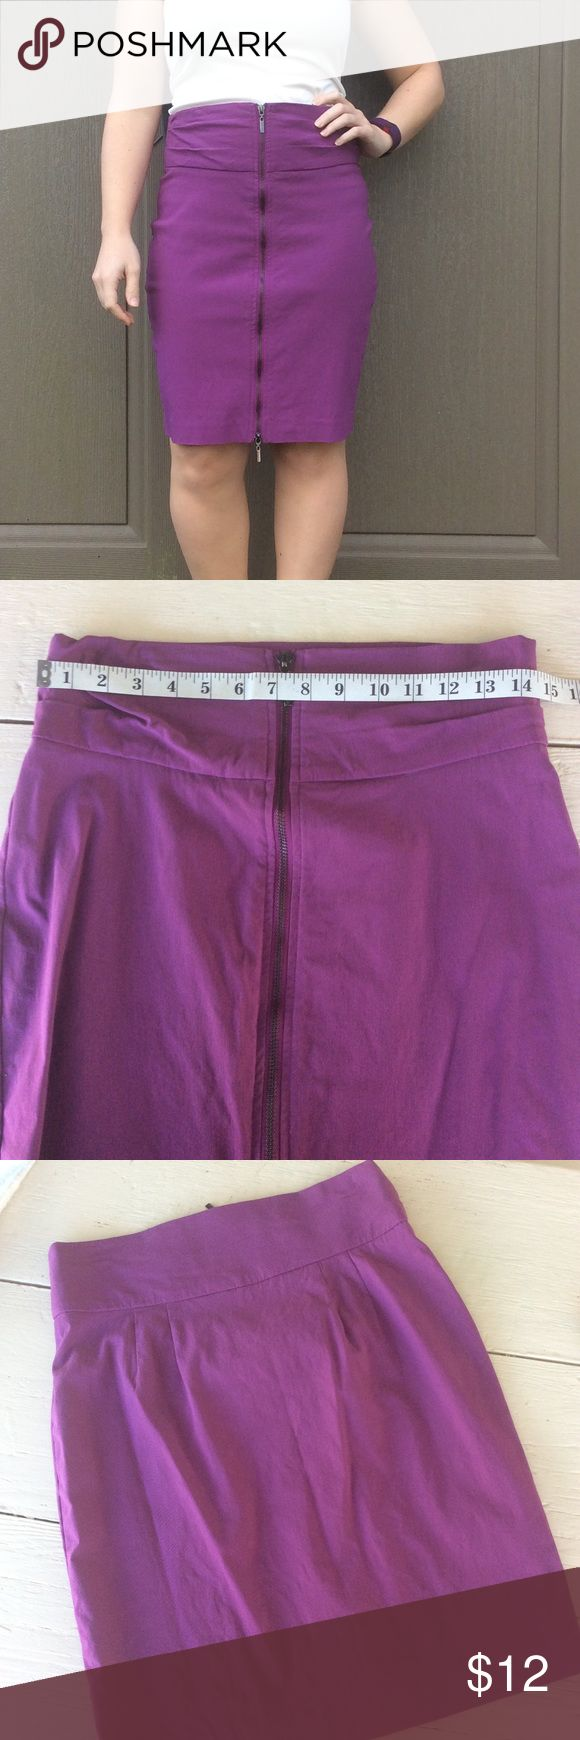 "Purple Pencil Skirt High waist skirt with working zipper down the front. Material is stretchy, labeled an 8, fits like a 6. 21"" long.   >Condition: Very good  🚫 No Trades ✅ Discounted Bundles ✅ Reasonable Offers Bisou Bisou Skirts"